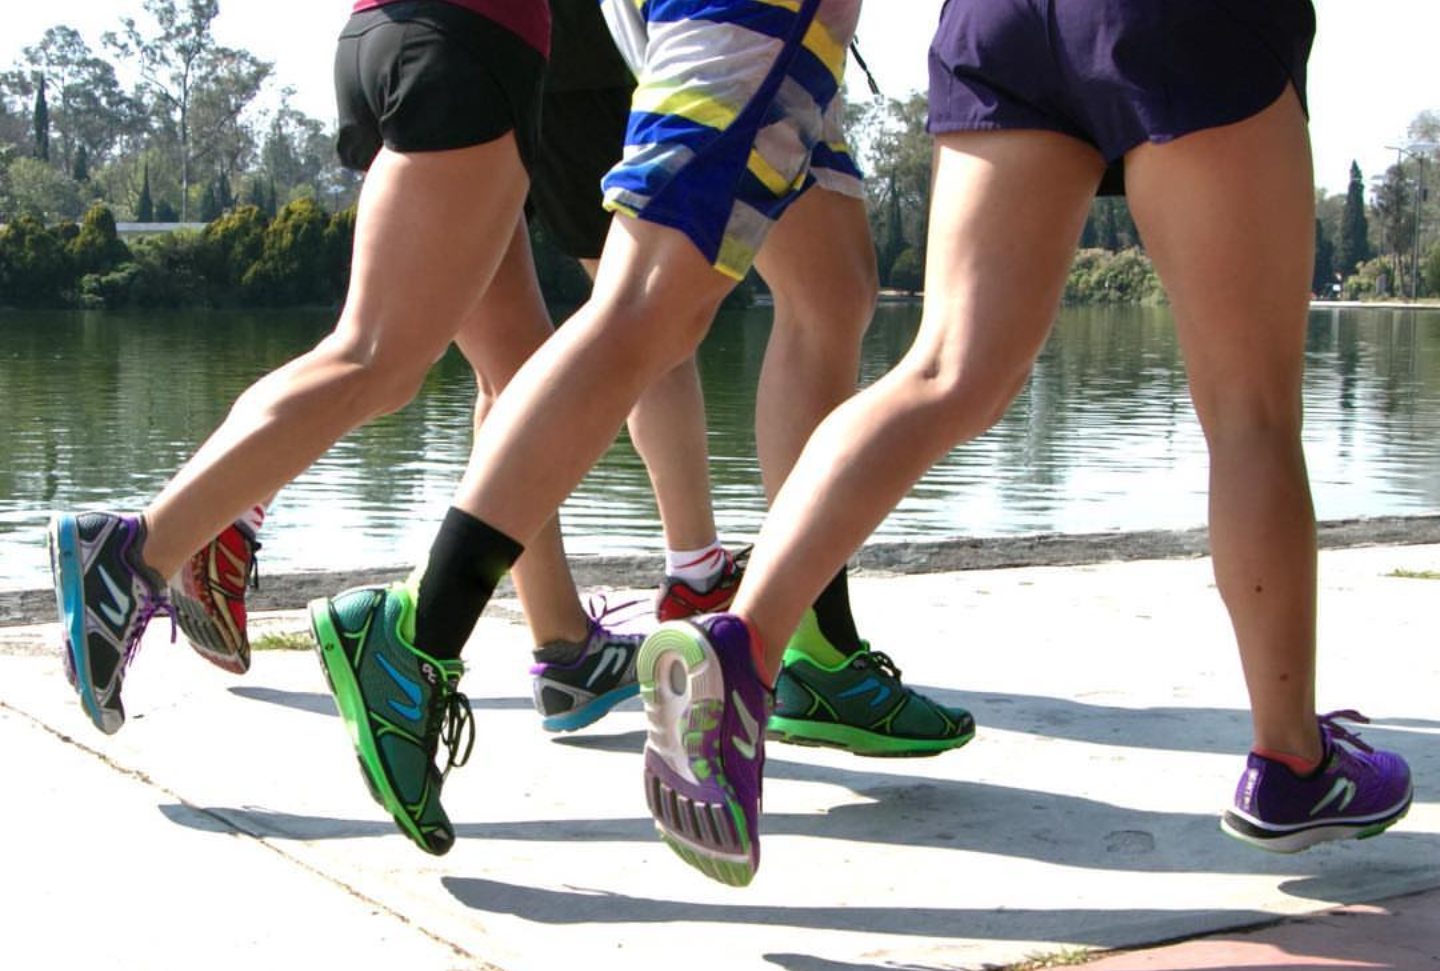 Three runners in Newton shoes